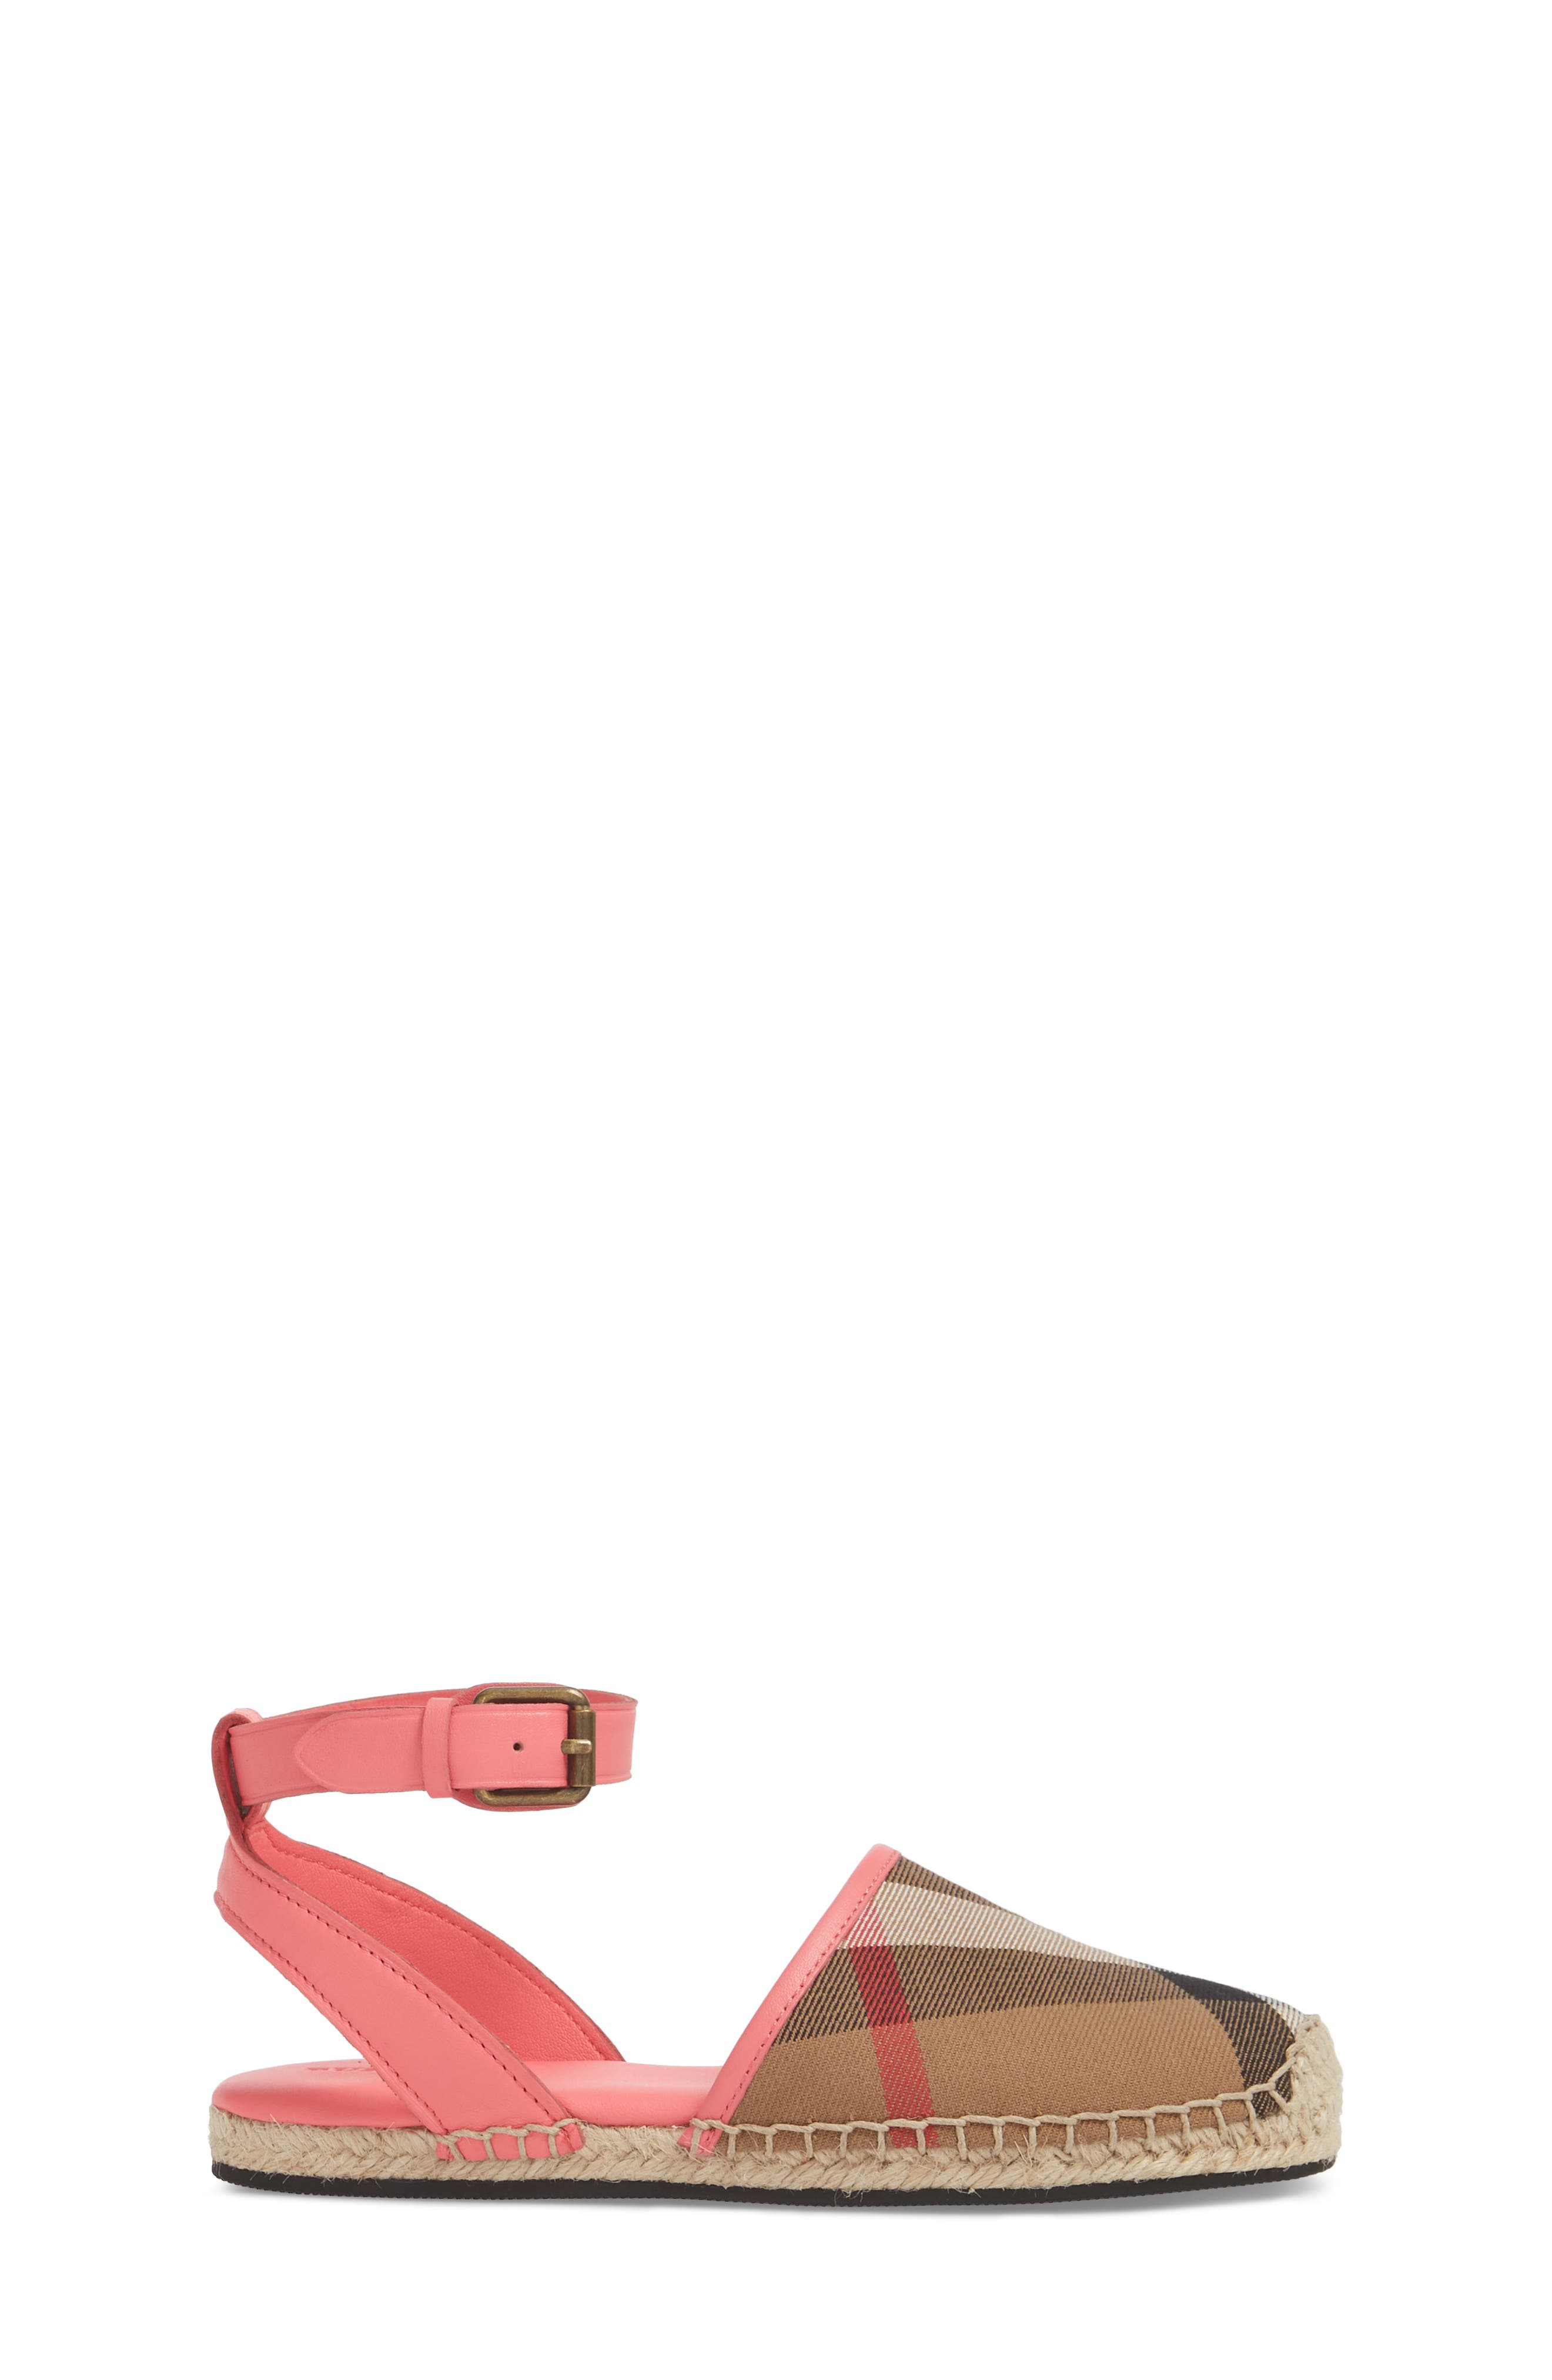 New Perth Espadrille Sandal,                             Alternate thumbnail 3, color,                             Bright Peony Rose